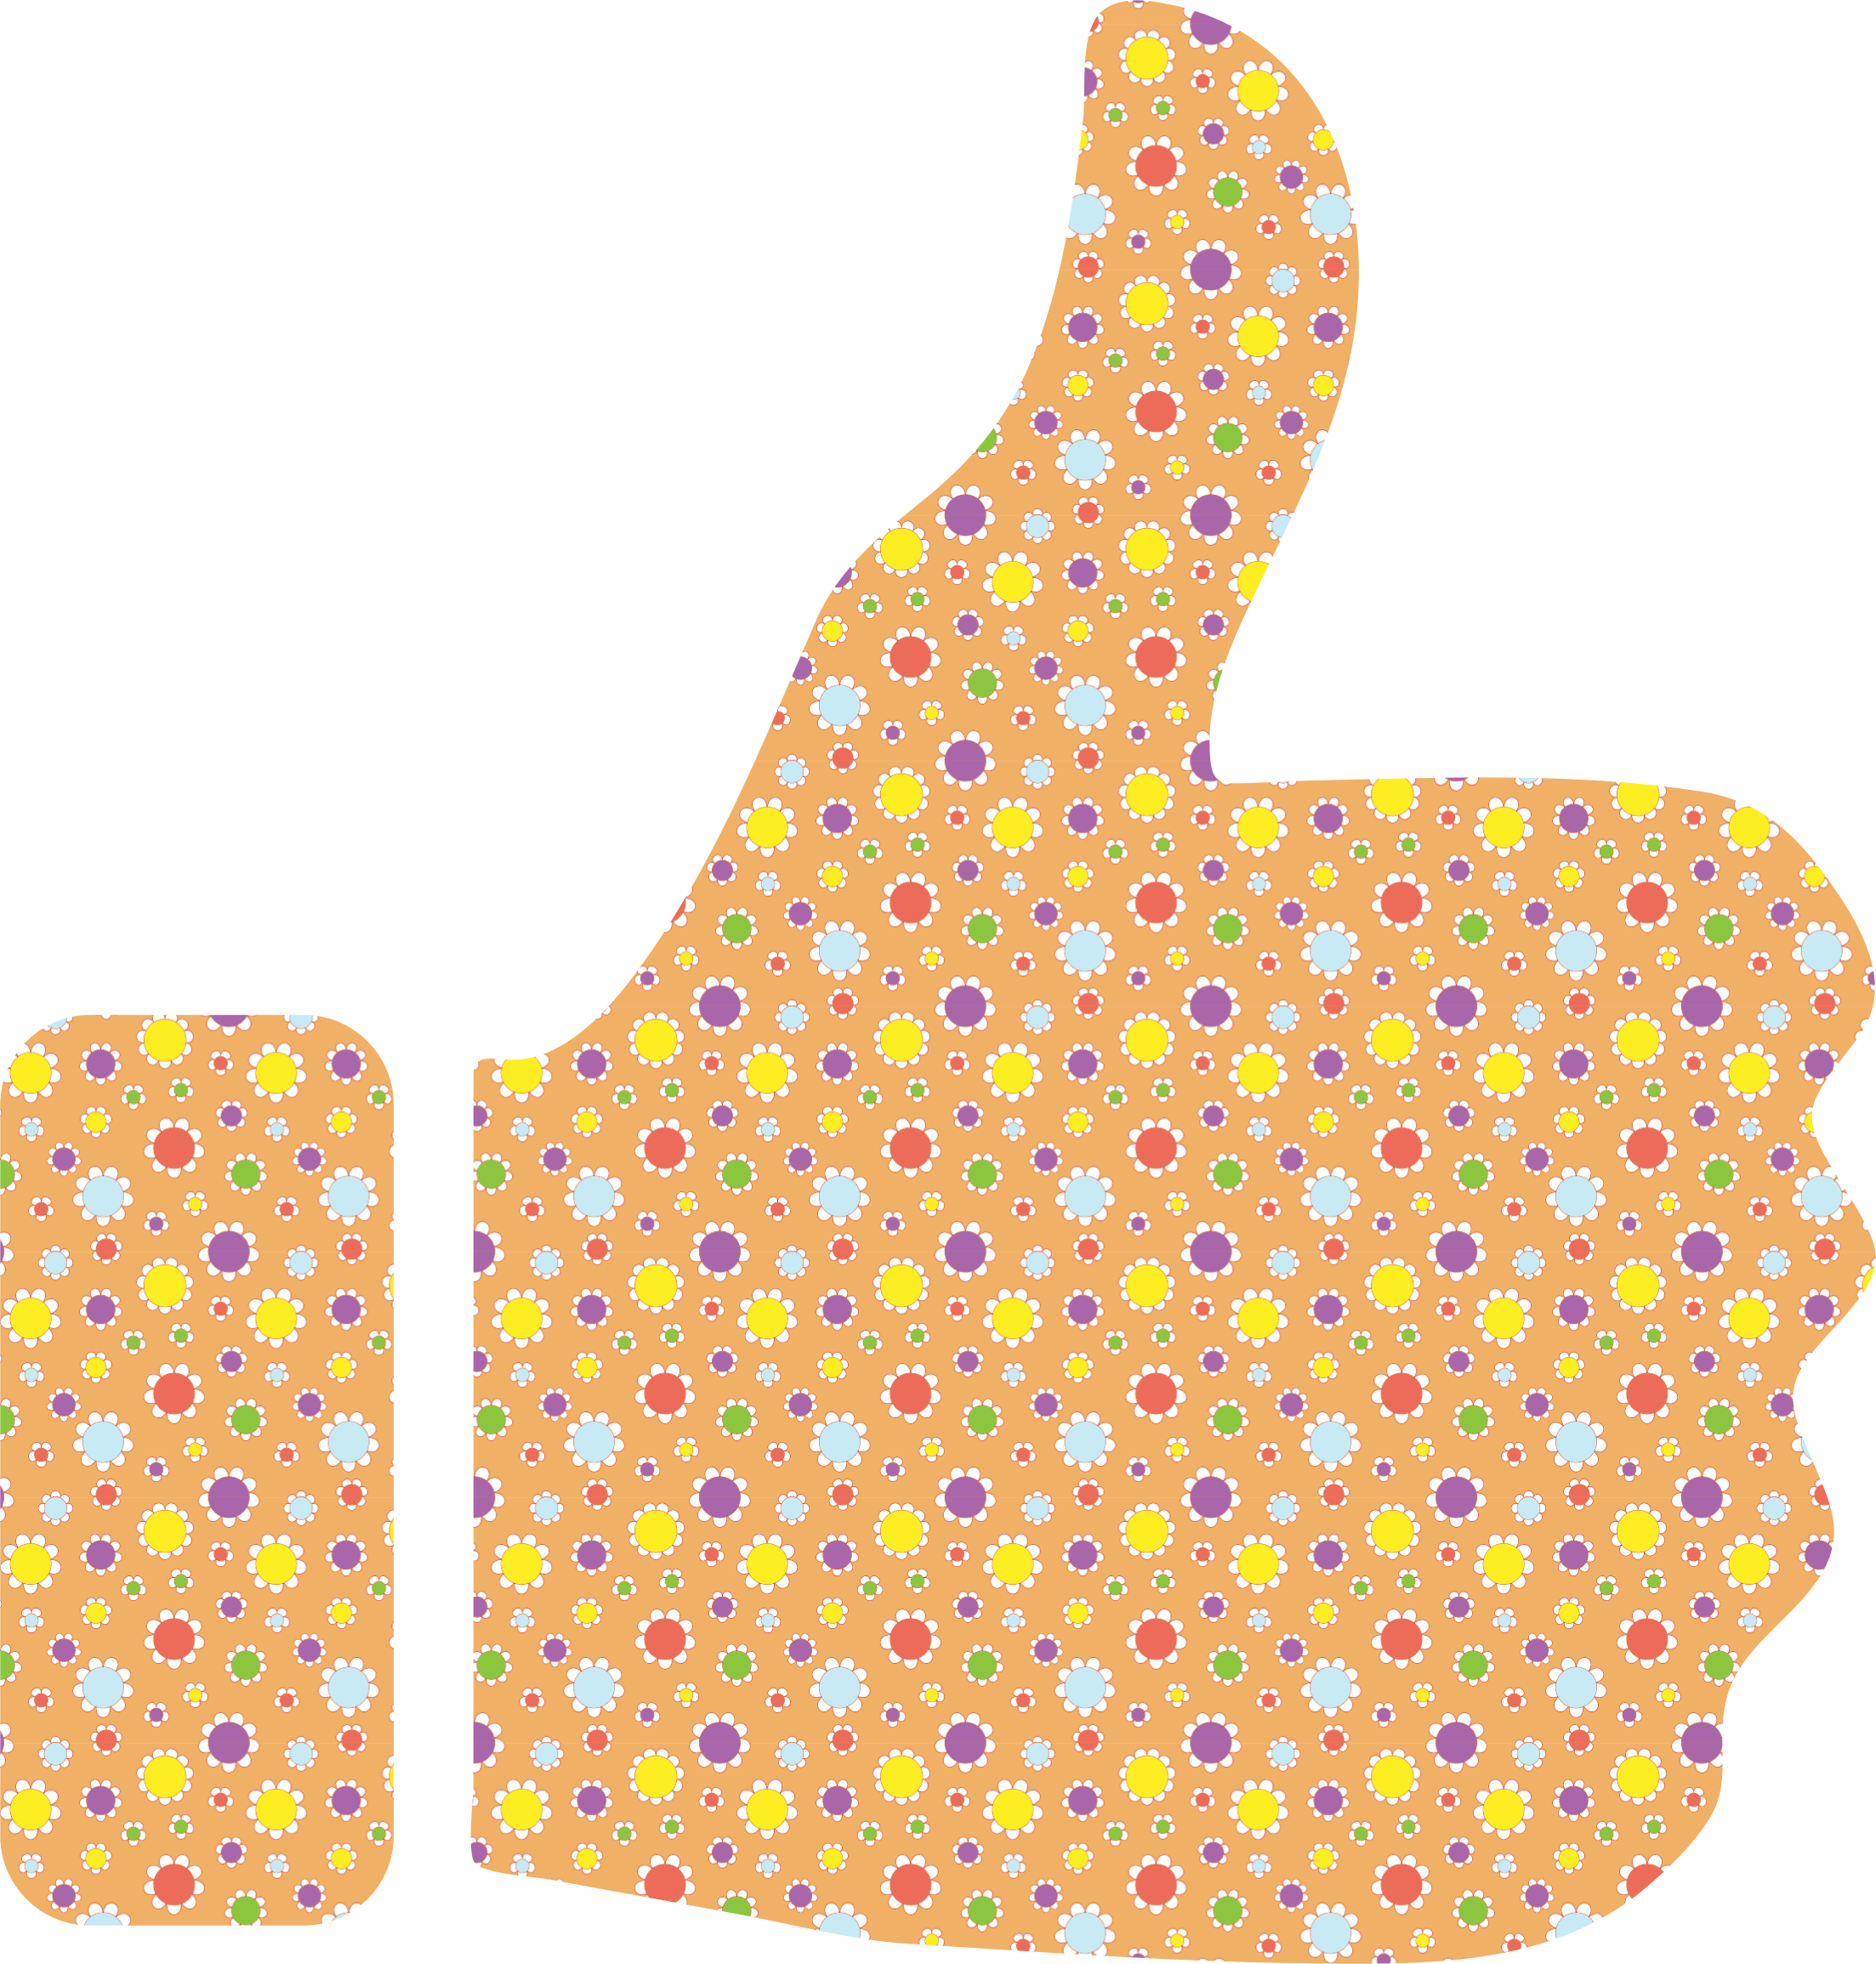 Cute Floral Thumbs Up by GDJ